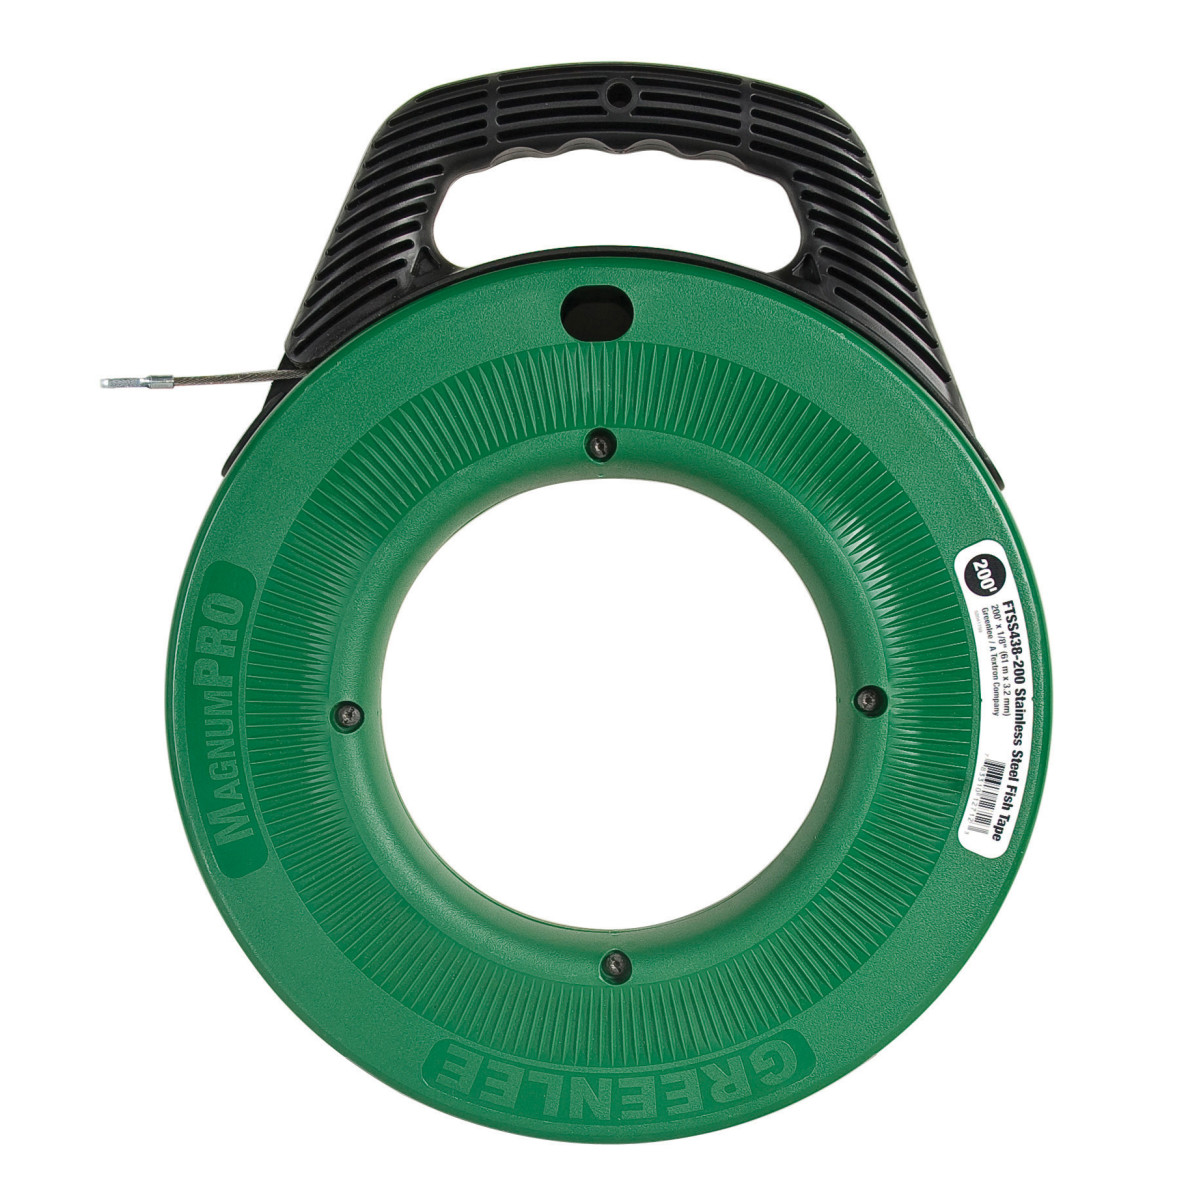 Greenlee FTSS438-200 Stainless Steel Fish Tape - 200' x 1/8""